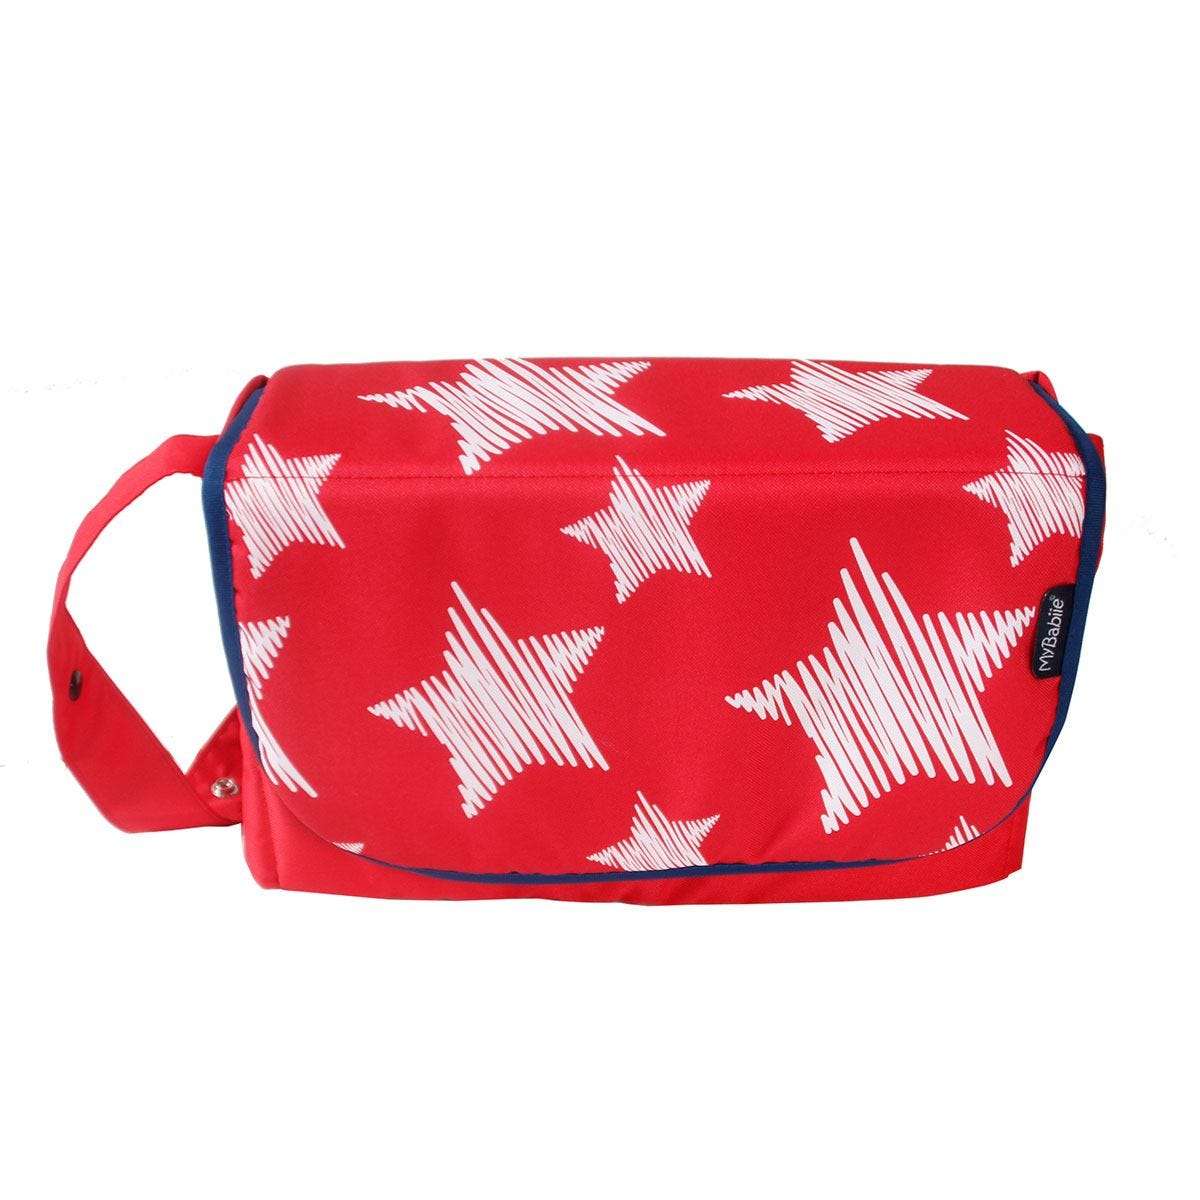 My Babiie Changing Bag - Red Stars